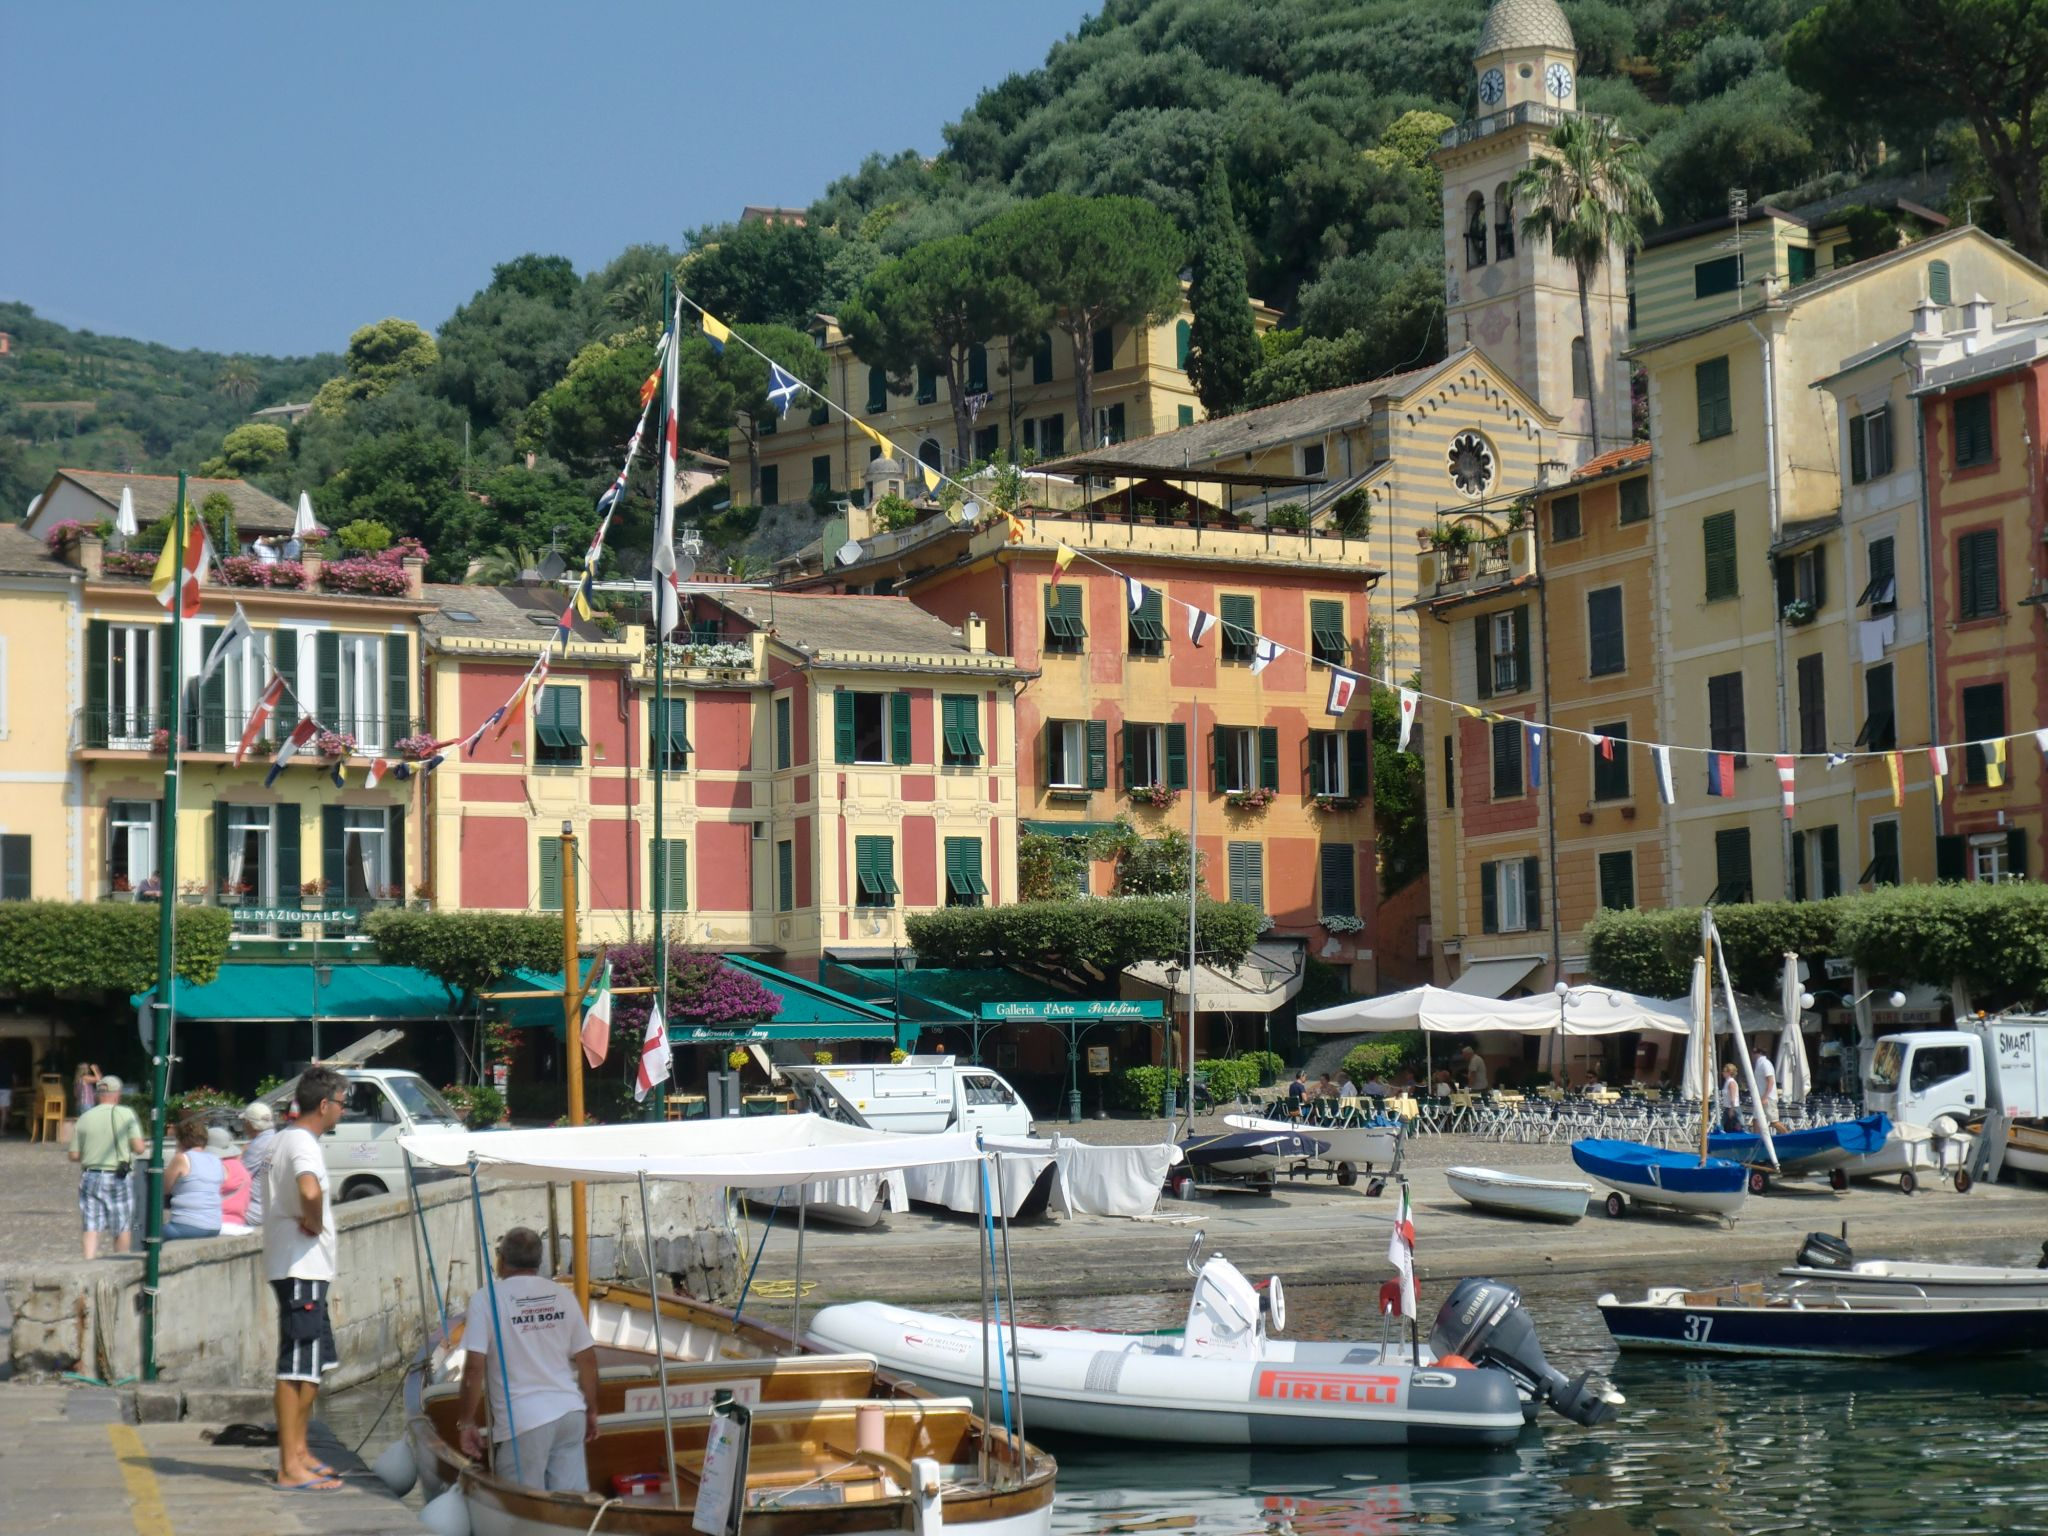 Portofino 8 - Portofino: a small pearl on the sea